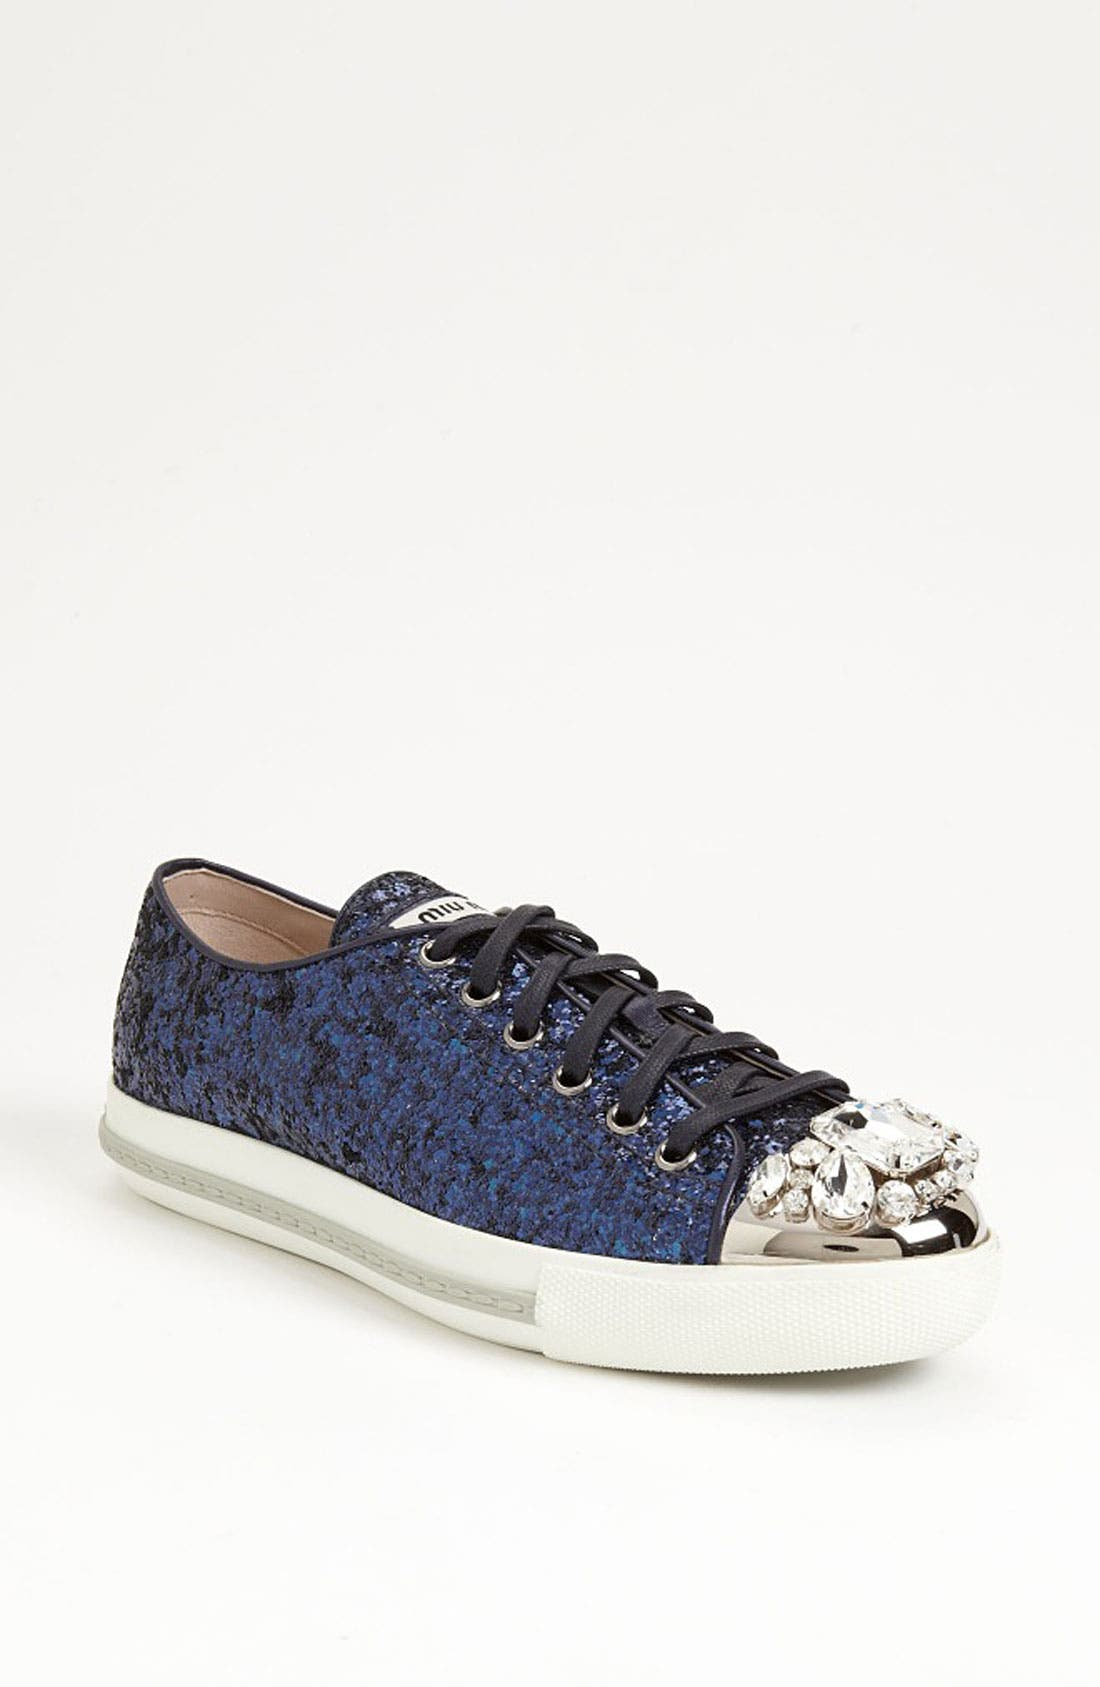 Alternate Image 1 Selected - Miu Miu Glitter Crystal Toe Sneaker